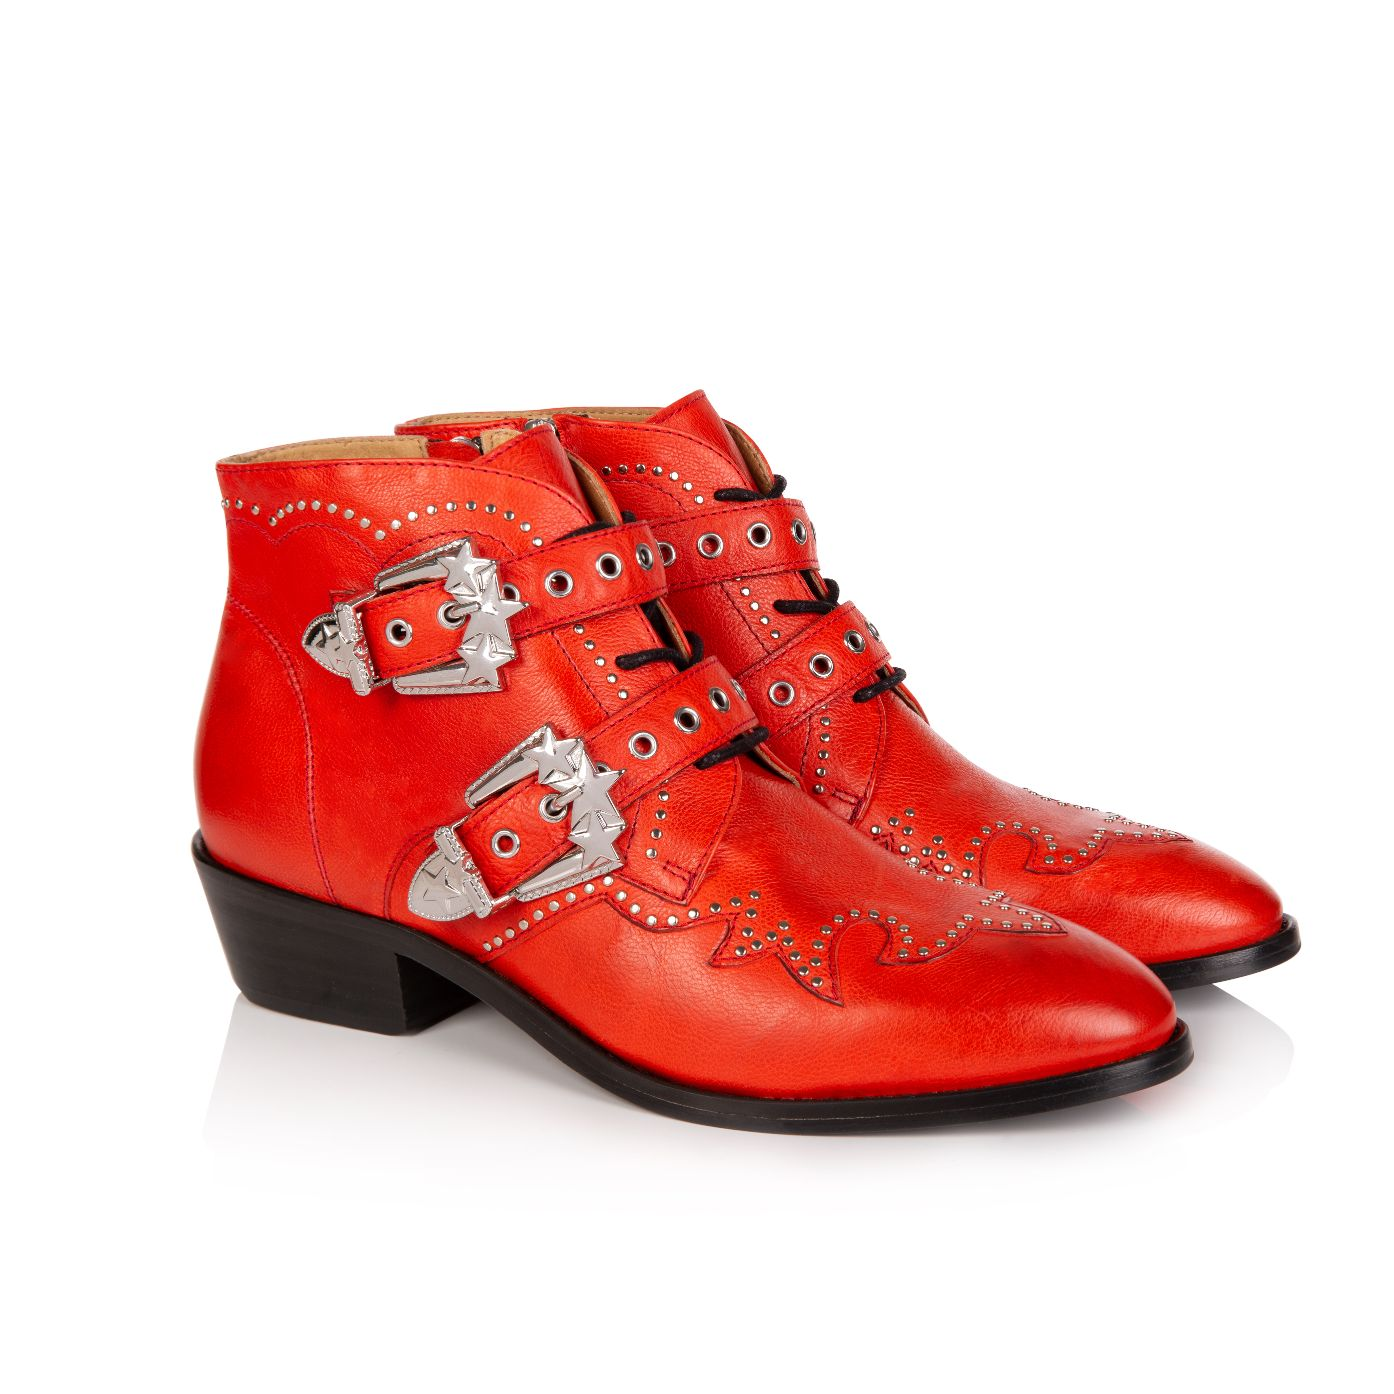 STARLIGHT: RED LEATHER ANKLE BOOTS